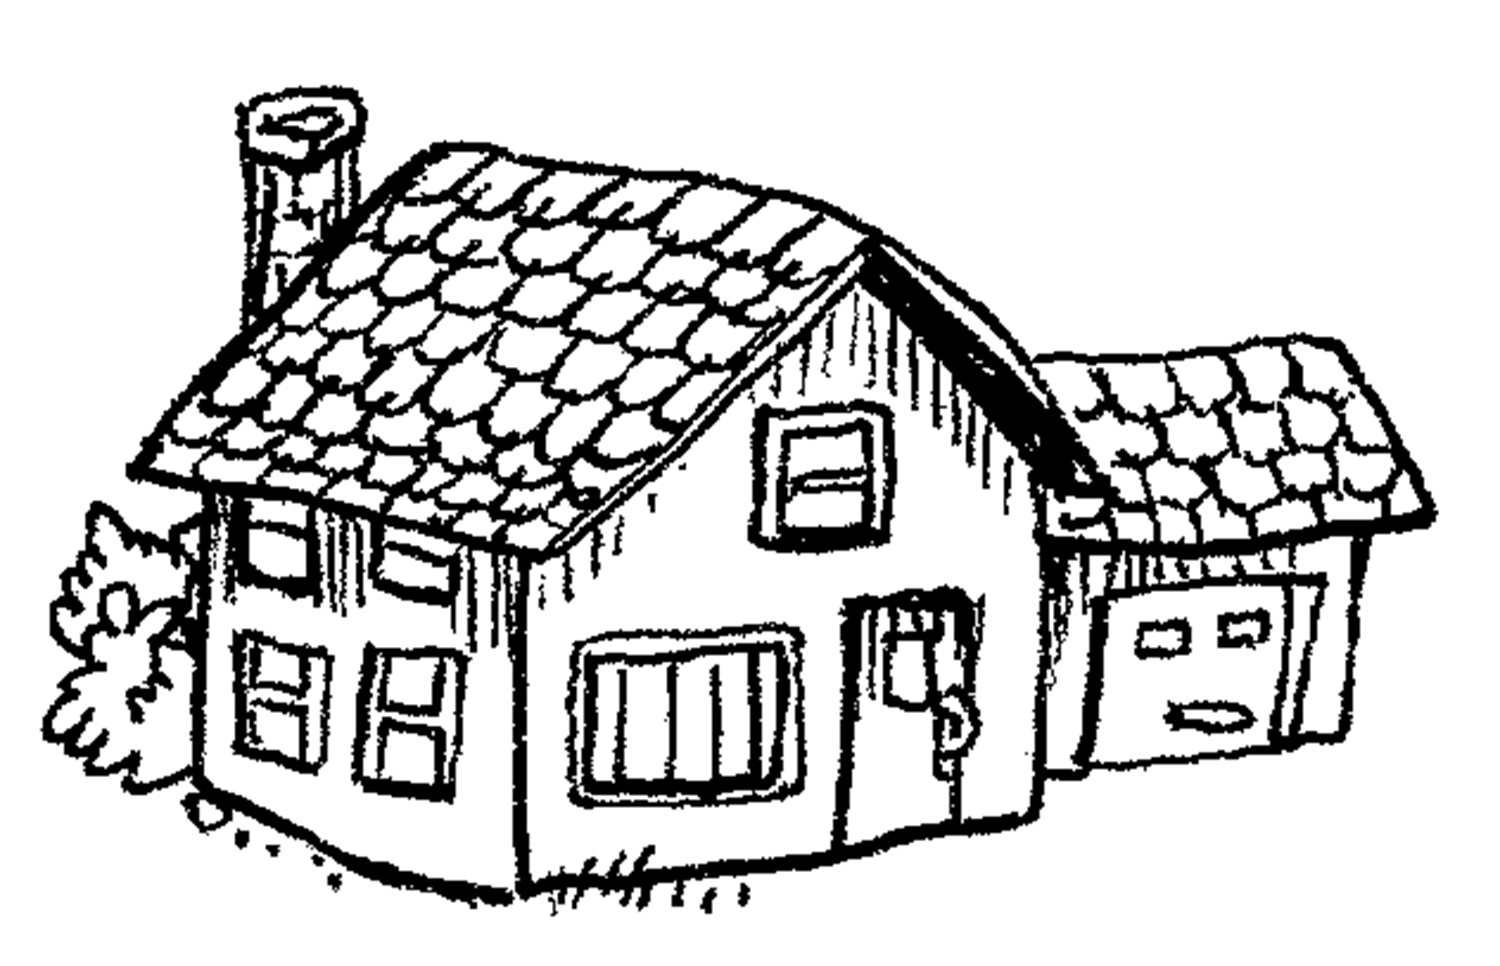 School House Drawing at GetDrawings.com | Free for personal use ...